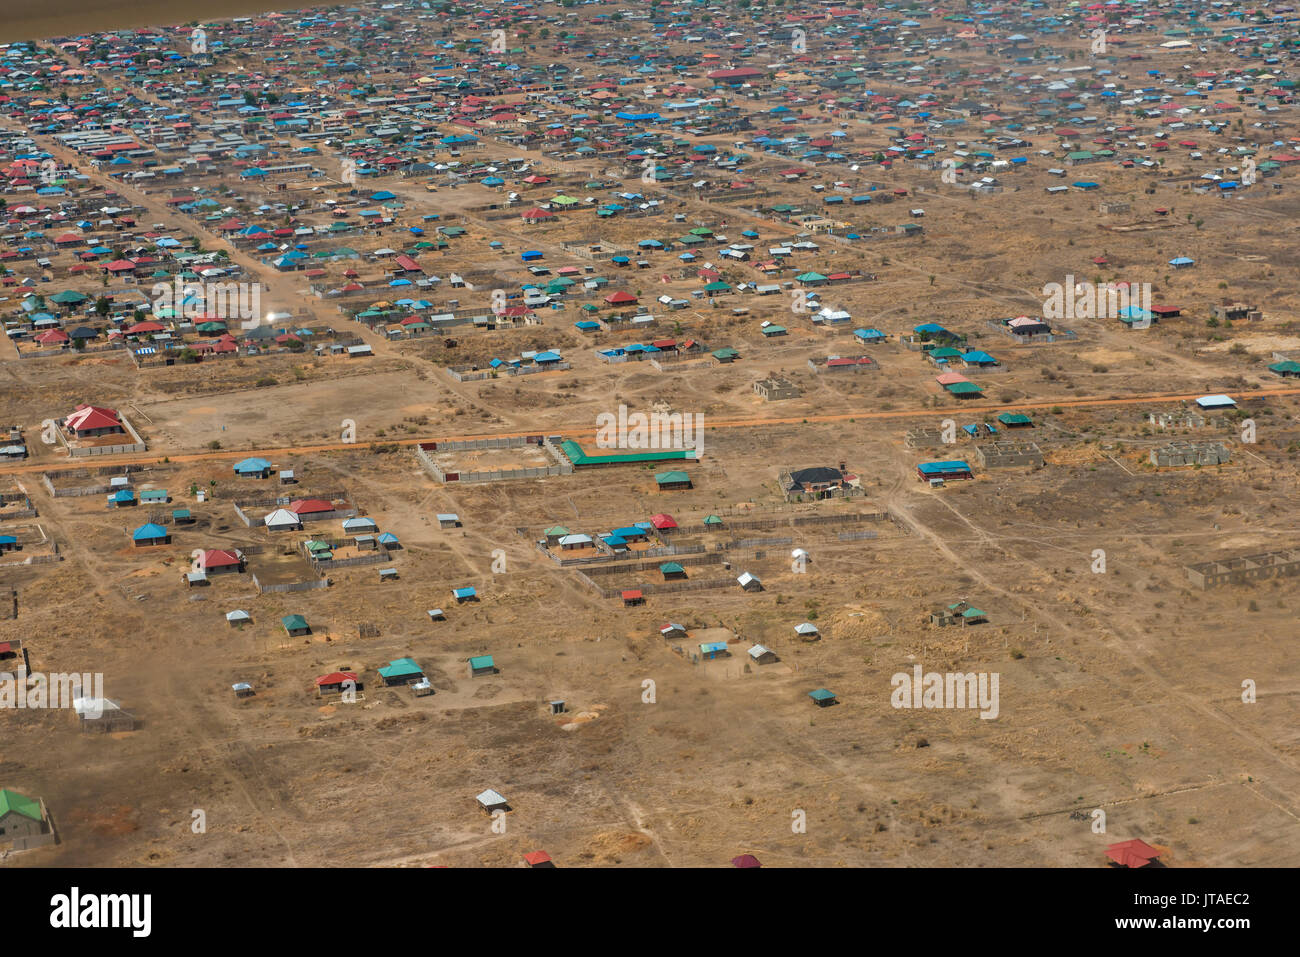 Aerial of Juba, South Sudan, Africa - Stock Image